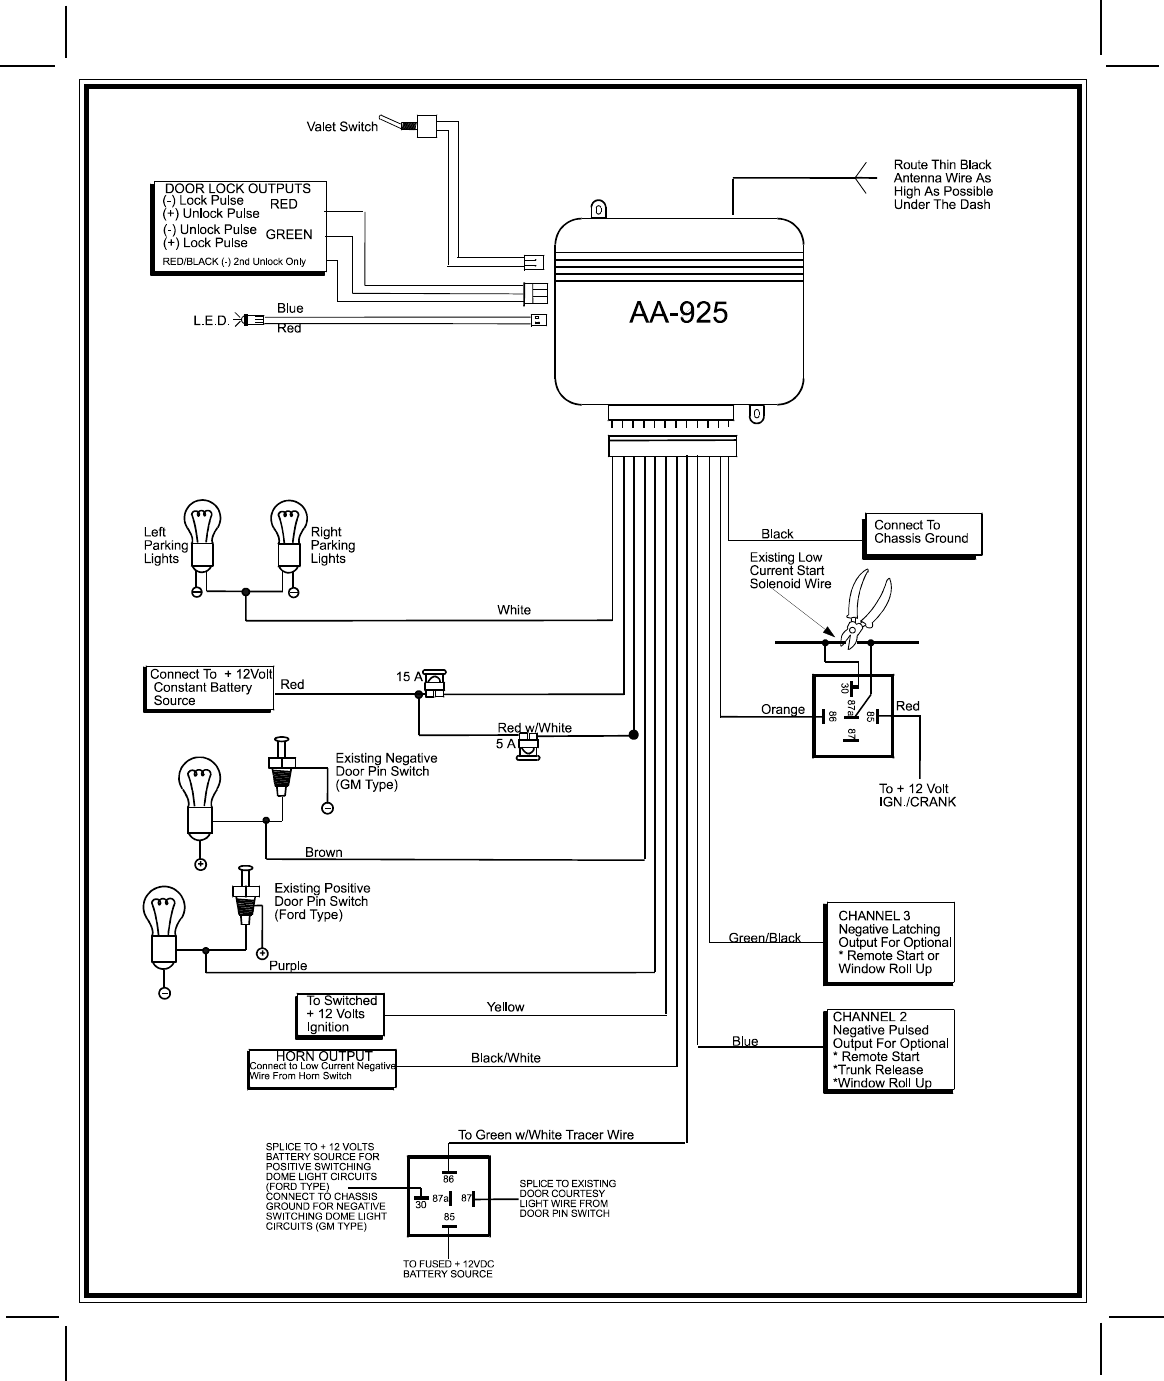 728e5939 5a52 46a4 ba14 2e72baef2843 bg8 page 8 of audiovox automobile alarm aa925 user guide uniden car alarm wiring diagram at aneh.co